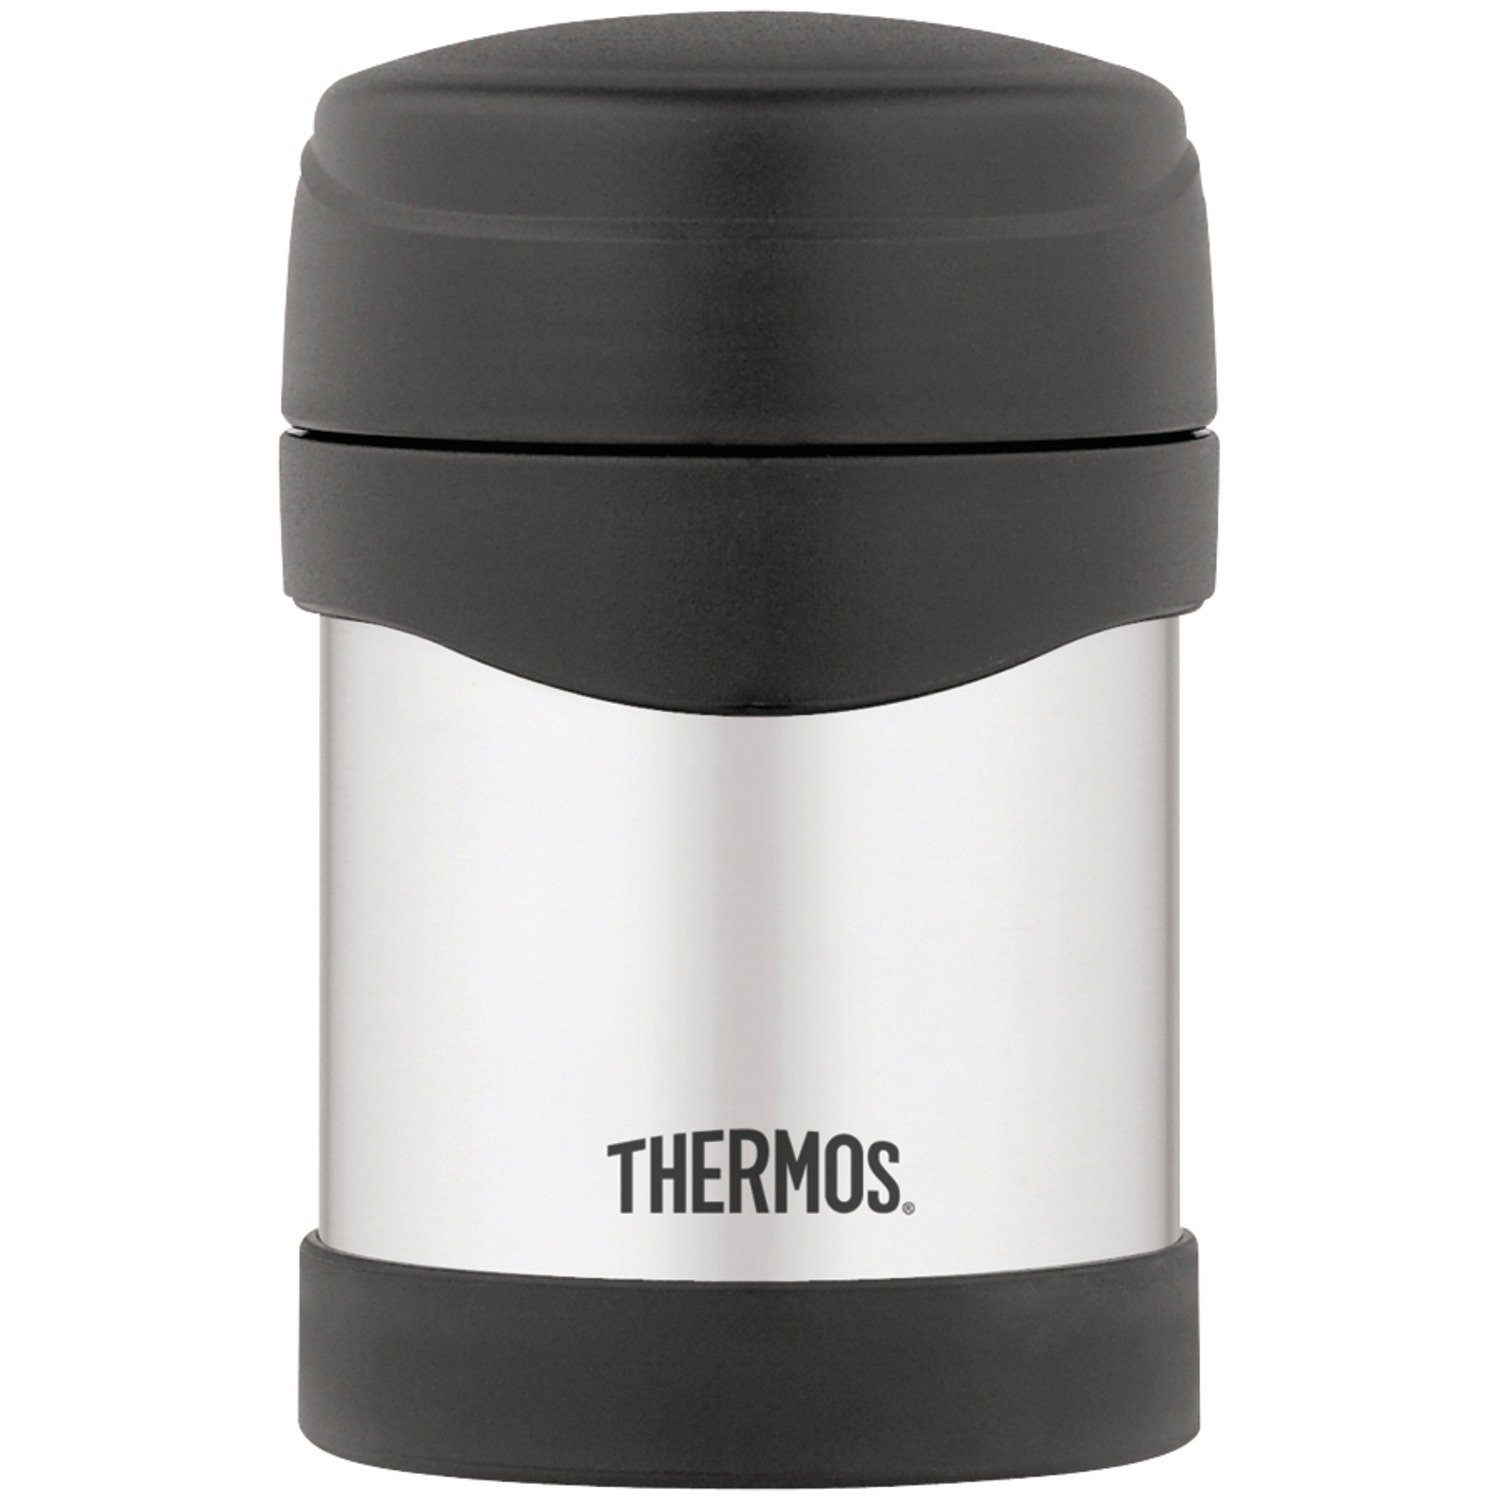 Thermos Mug Replacement Parts Best Mugs Design